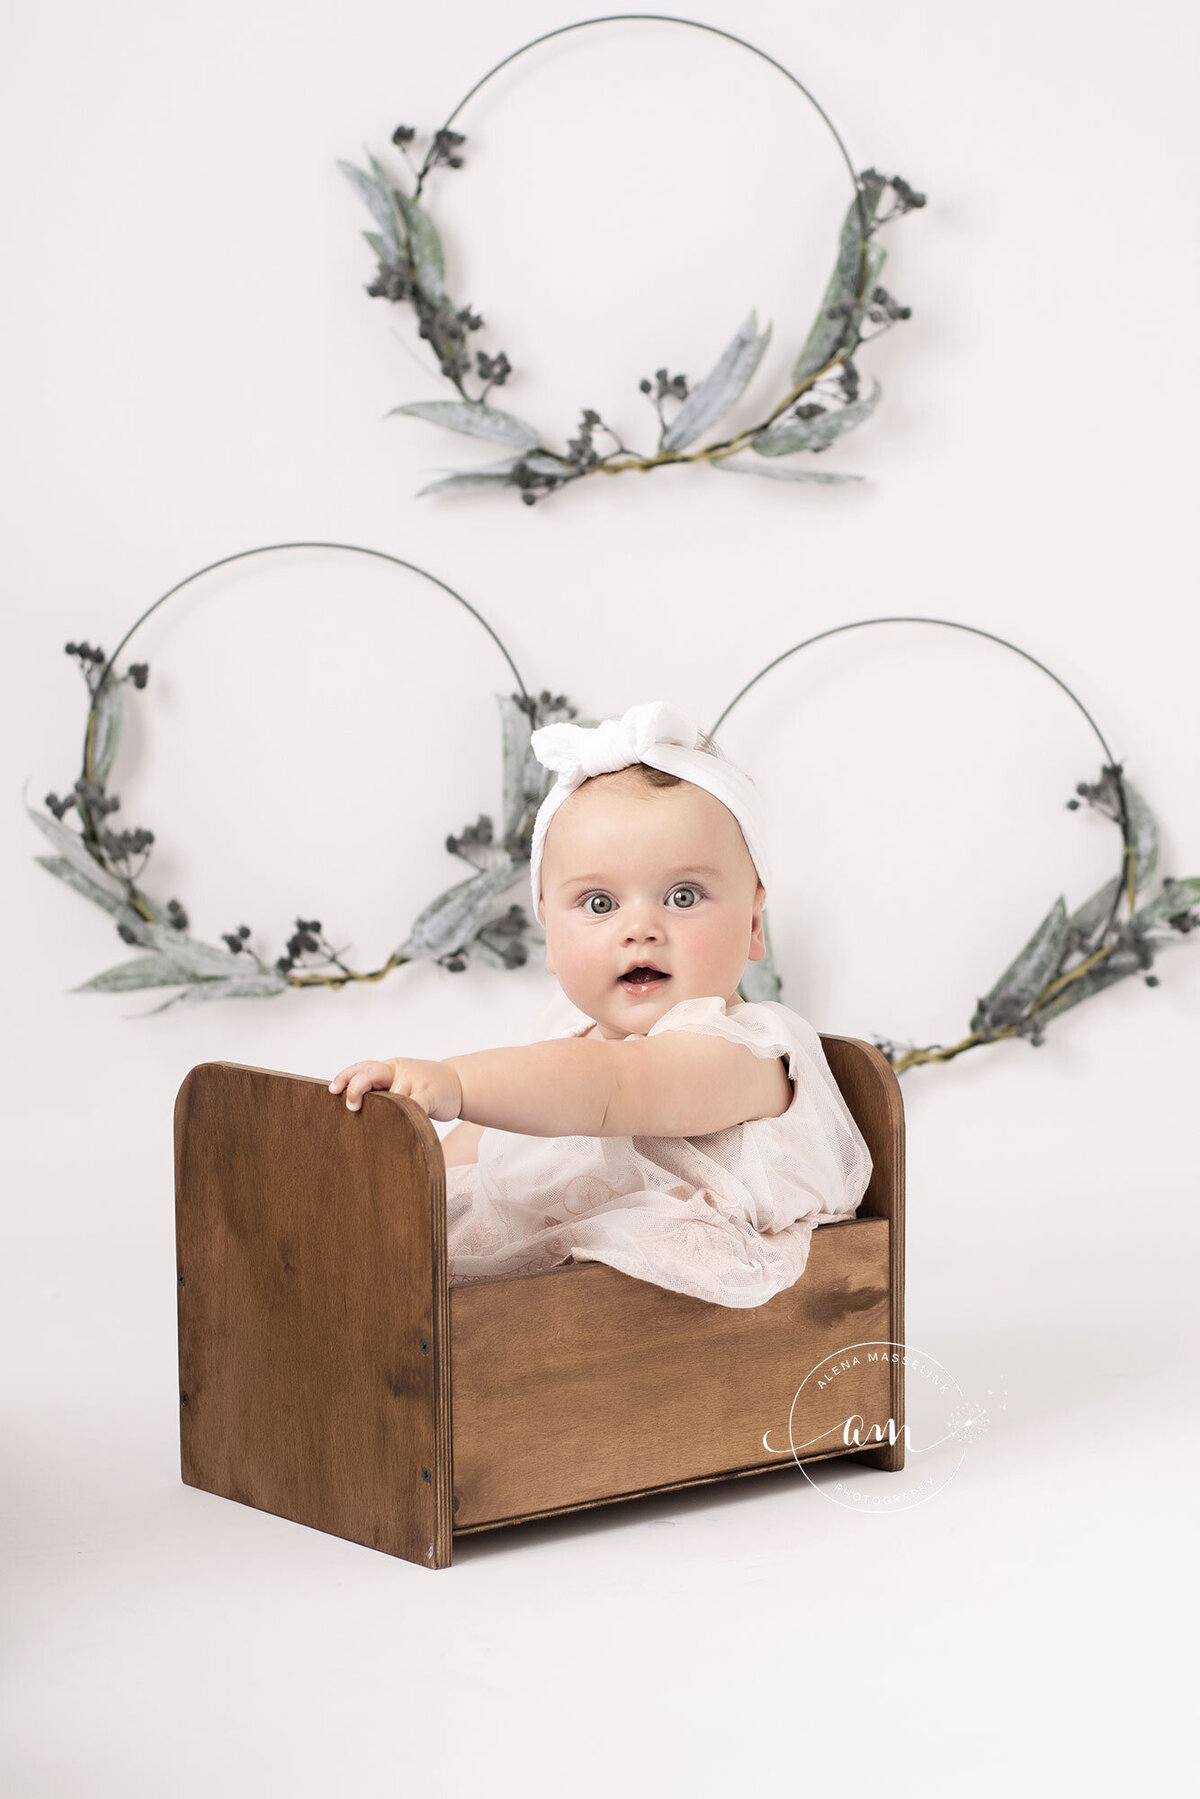 baby photo shoot in Leiden